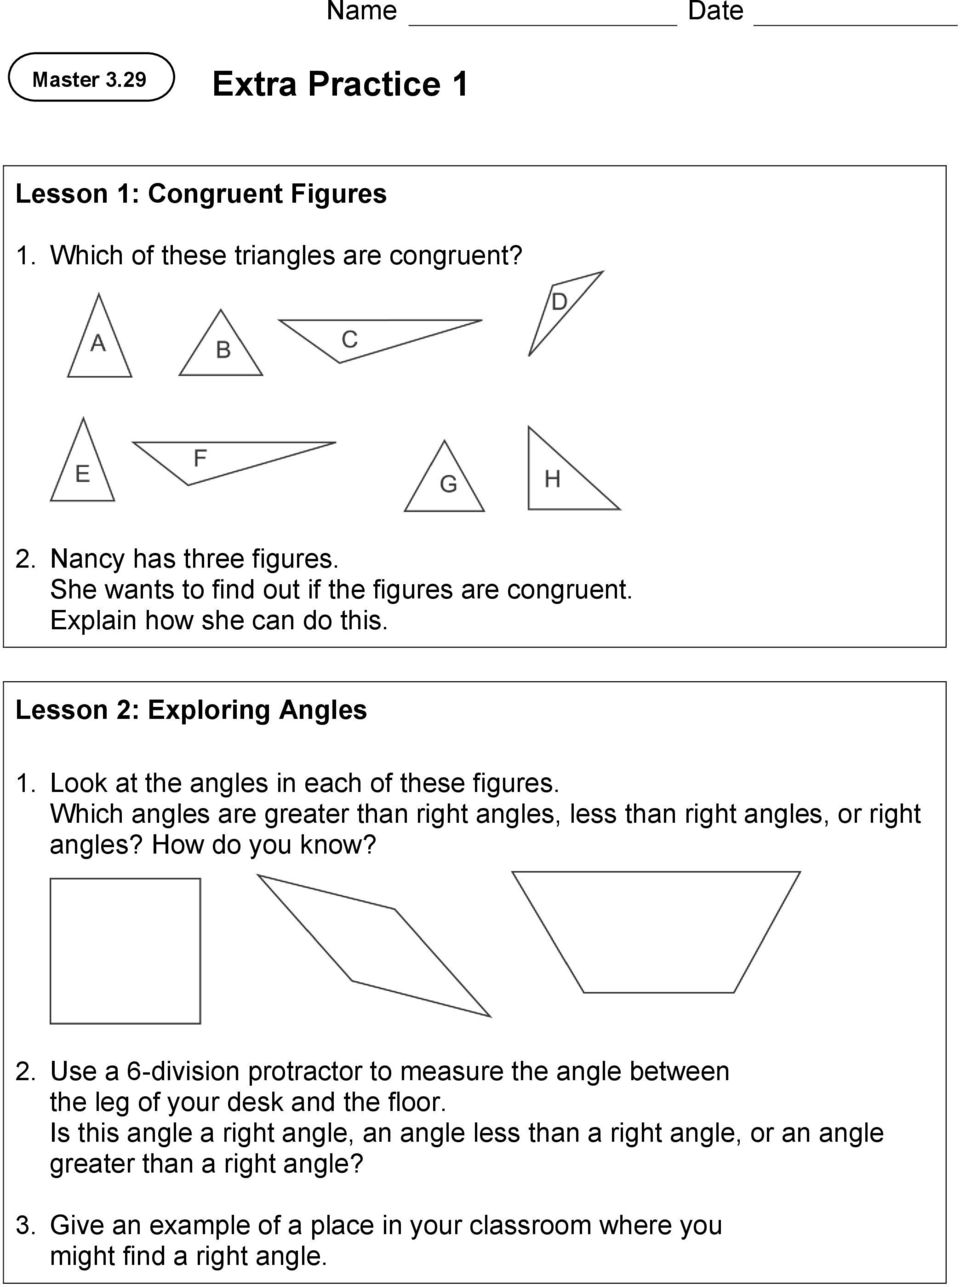 Which angles are greater than right angles, less than right angles, or right angles? How do you know? 2.